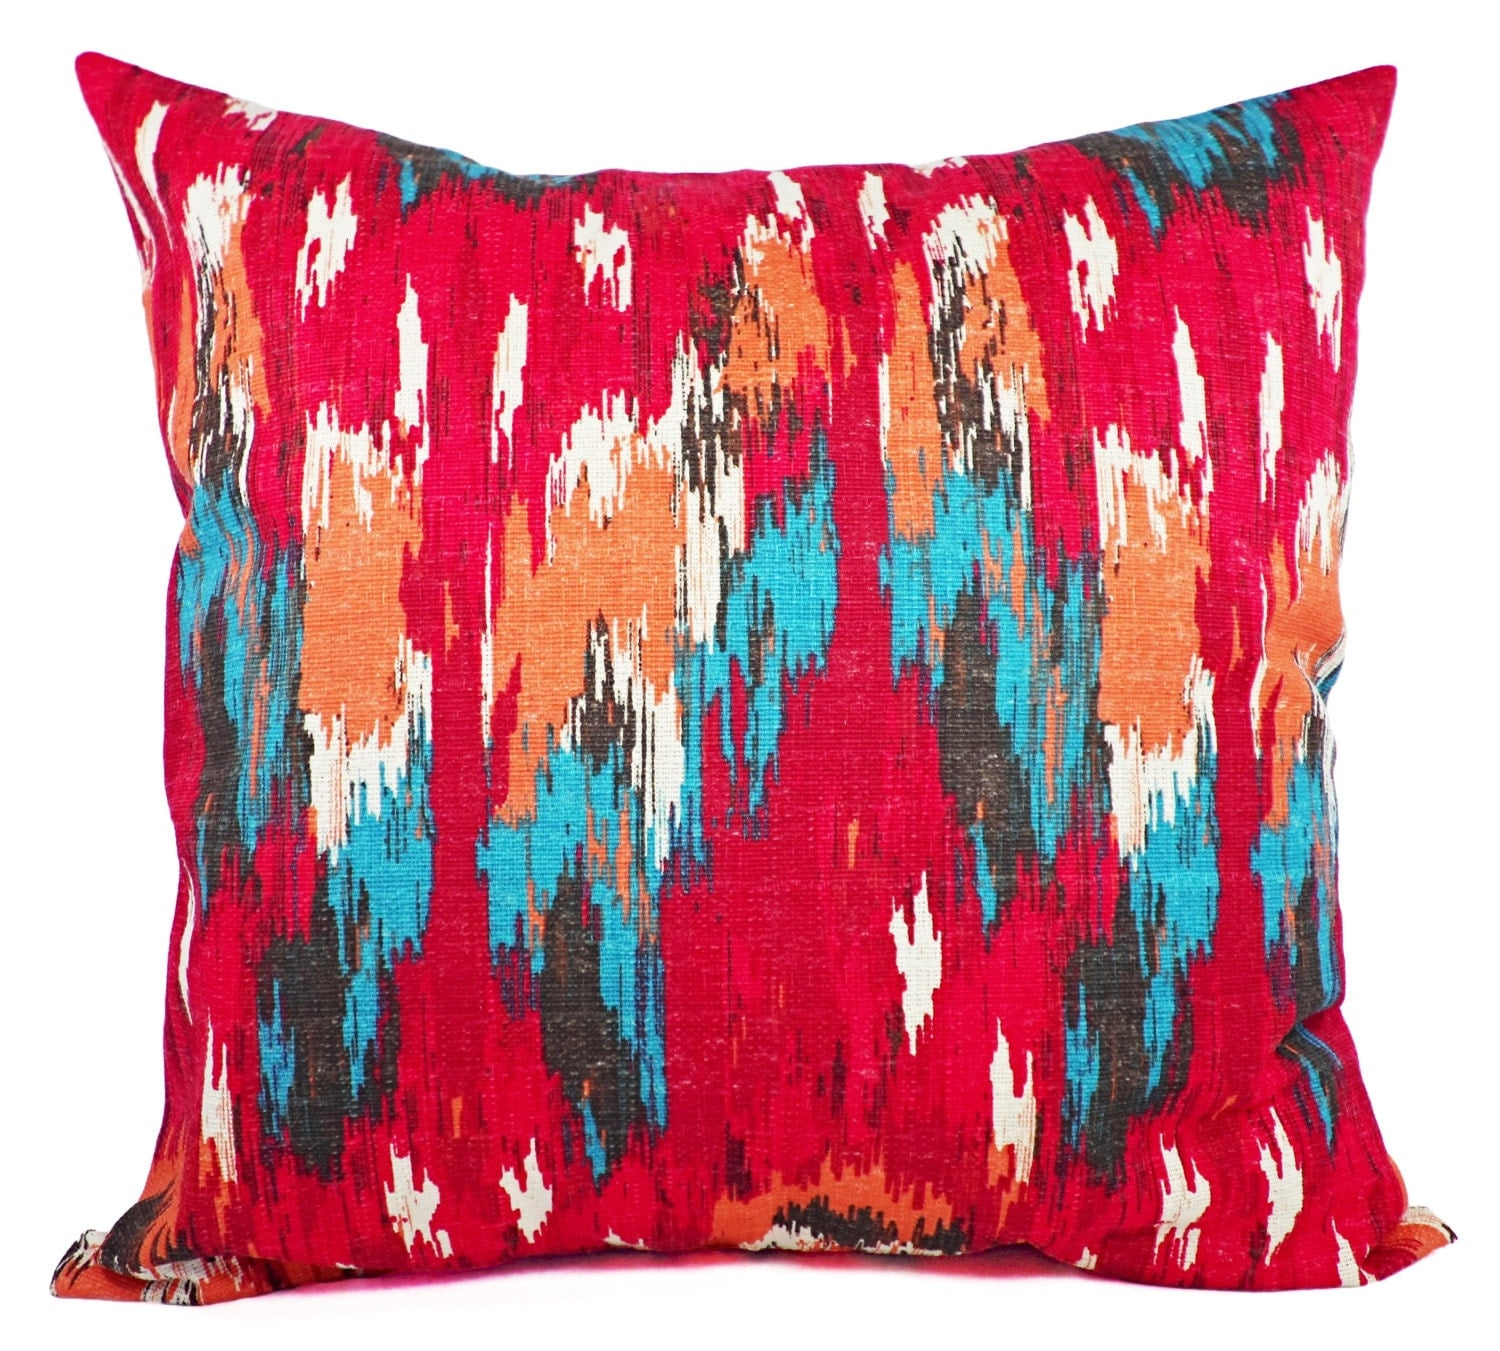 CLEARANCE Red Pillow Covers One Red and Blue Pillow Cover